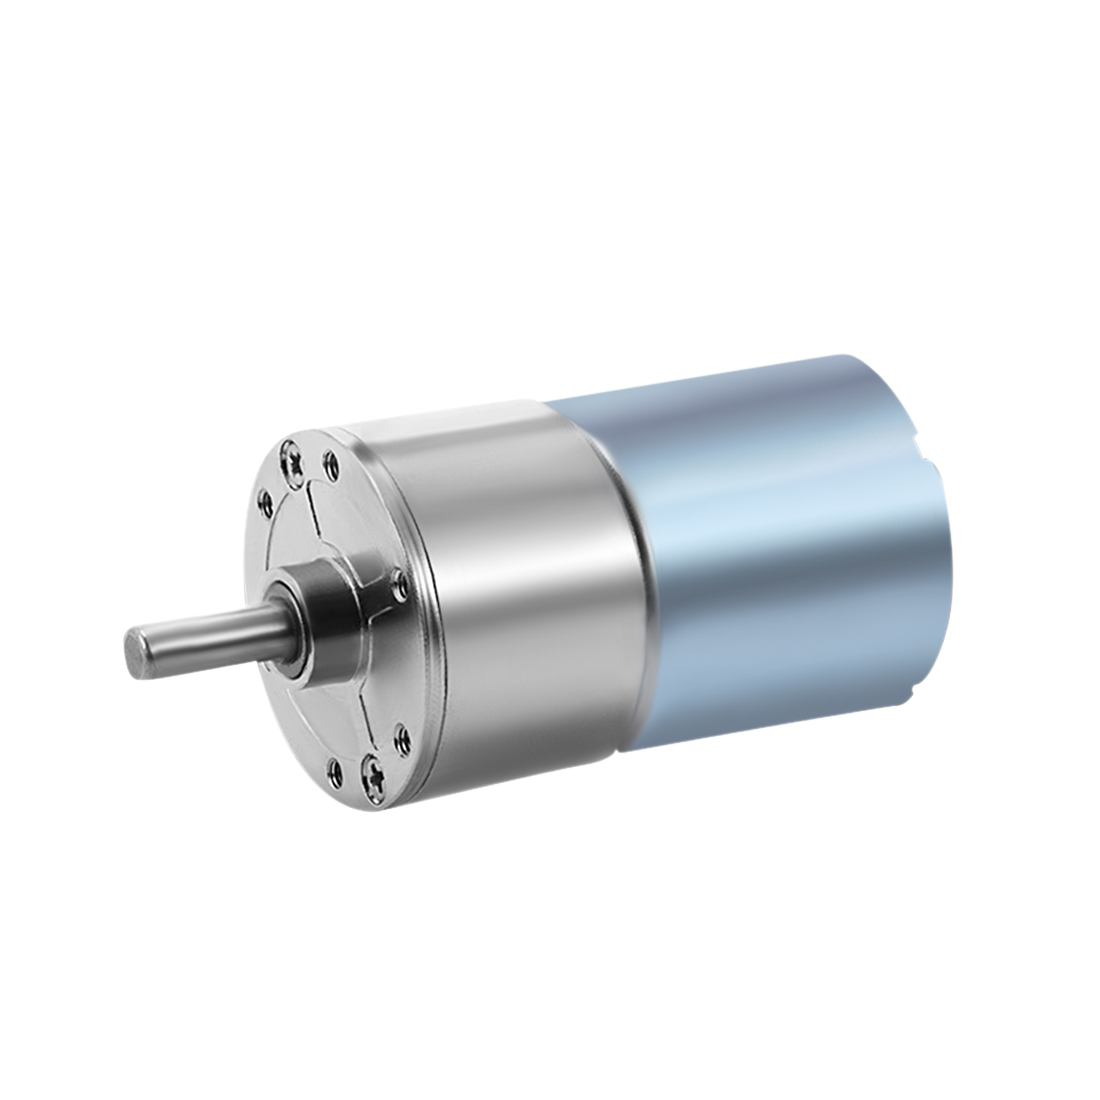 DC 12V 550RPM Micro Gear Box Motor Speed Reduction Electric Gearbox Centric Output Shaft